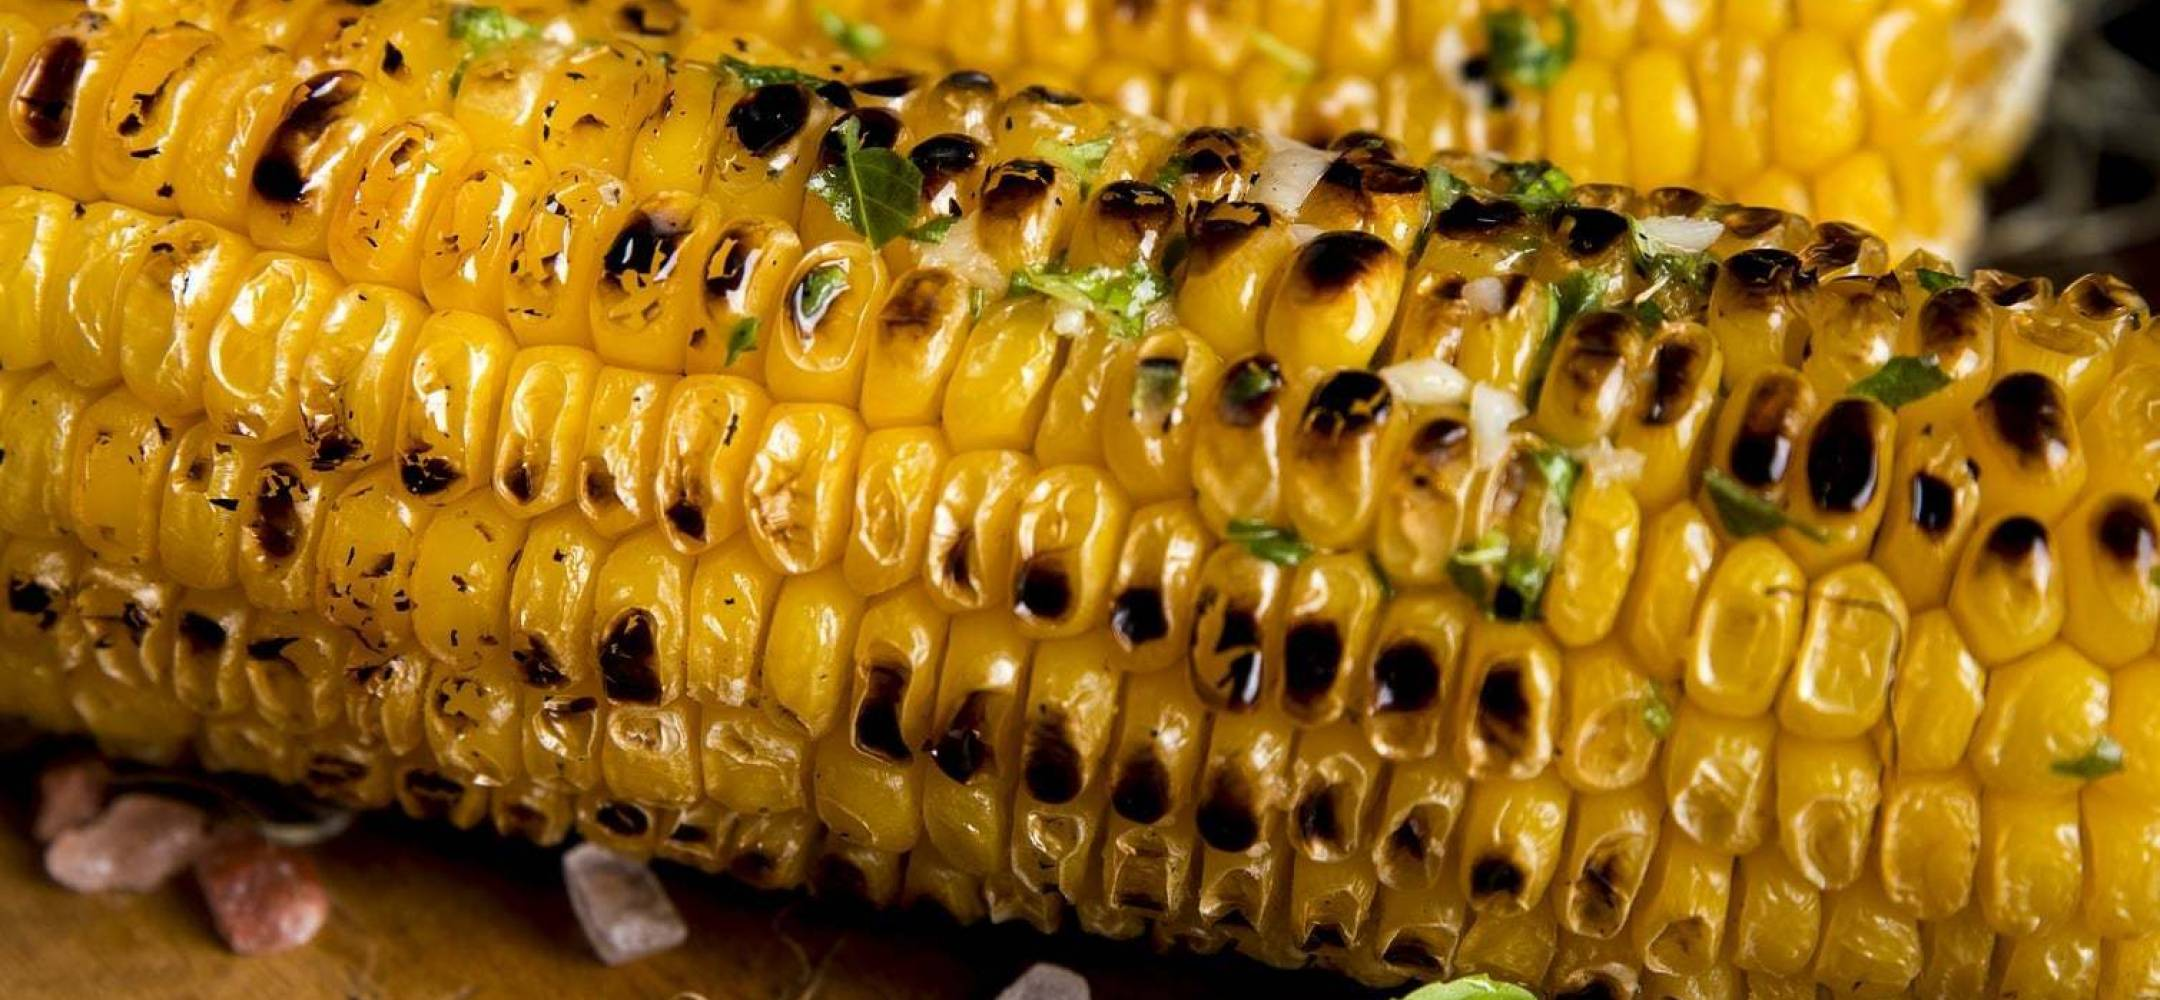 Corn: the Crop That Shaped the New World